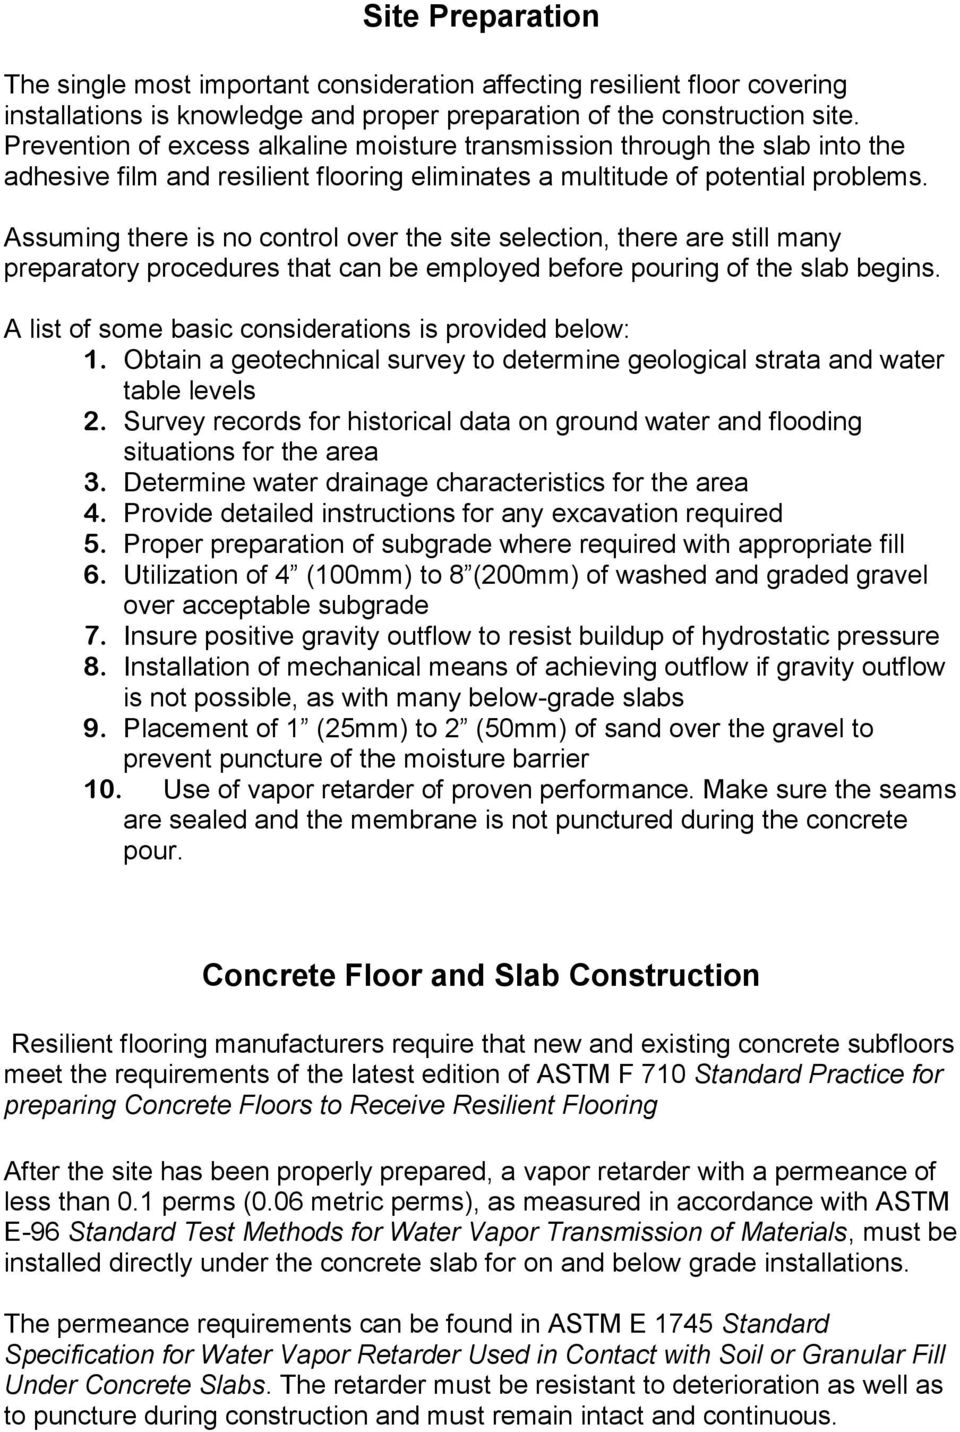 Assuming there is no control over the site selection, there are still many preparatory procedures that can be employed before pouring of the slab begins.